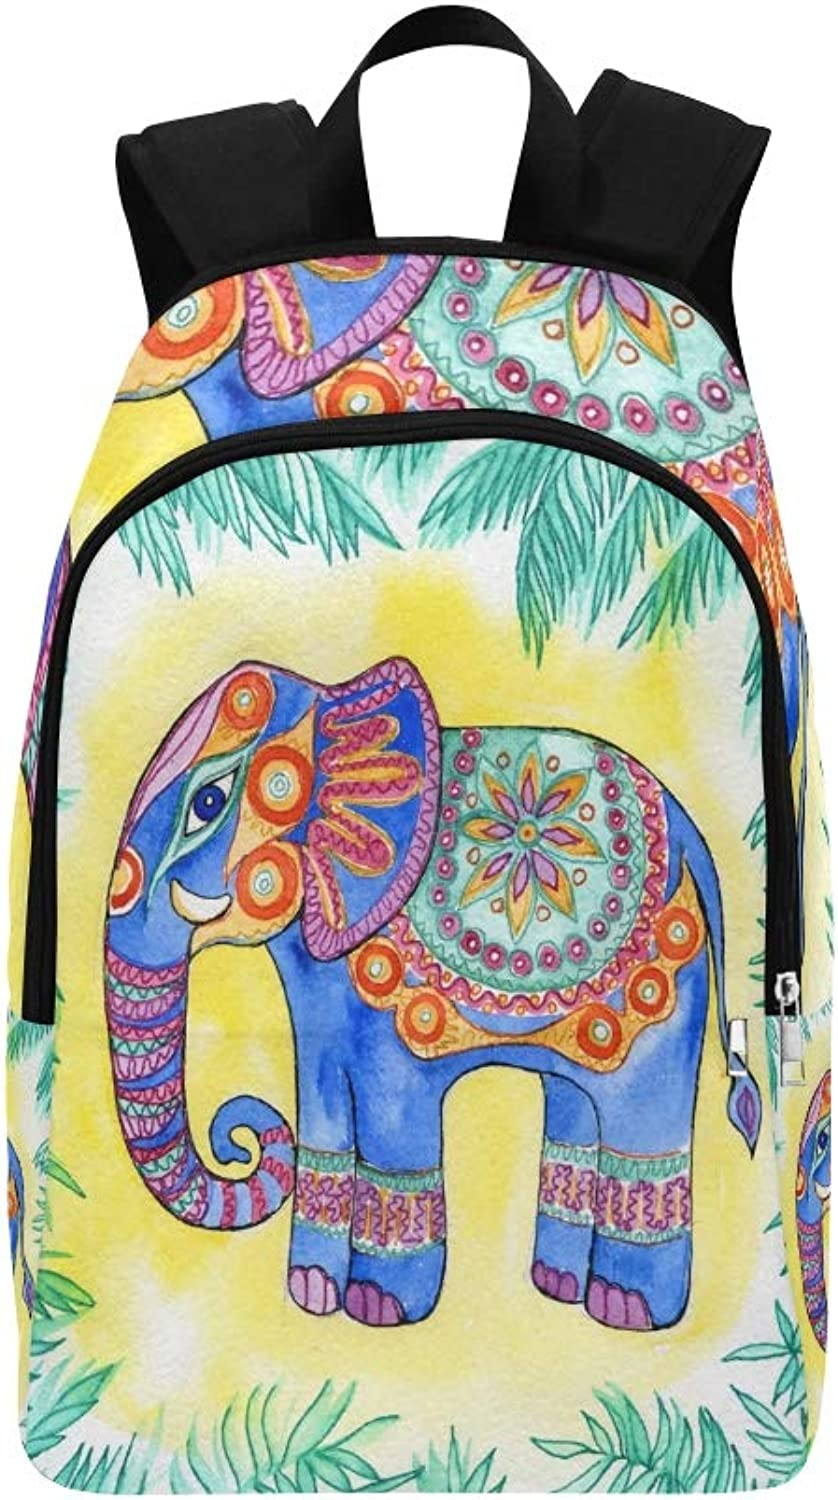 Elephant Animal India Casual Daypack Travel Bag College School Backpack for Mens and Women